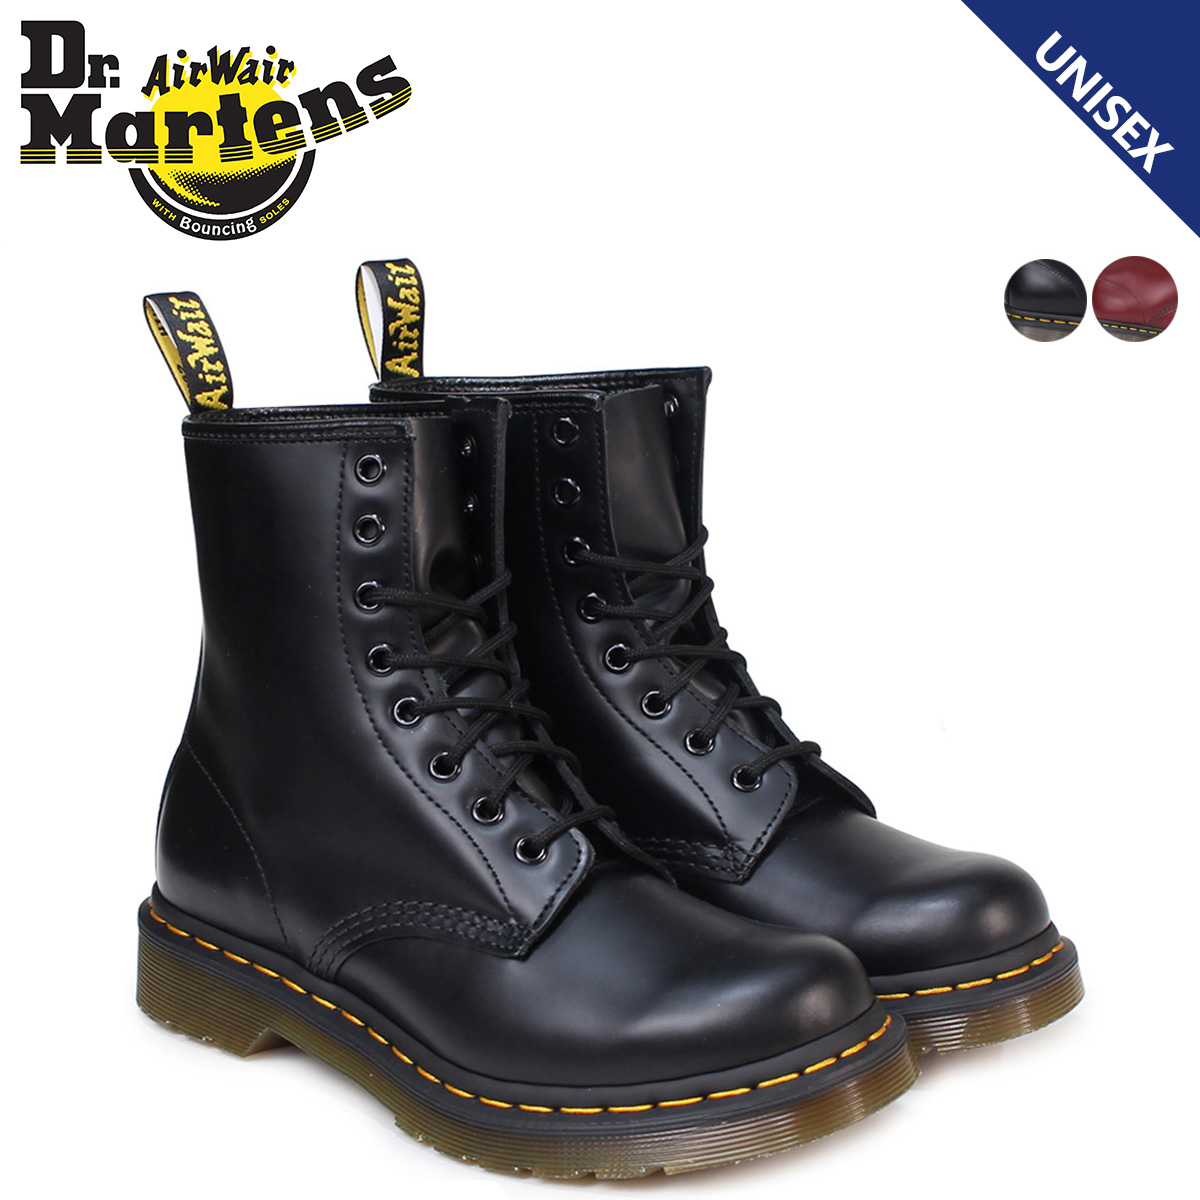 9361fa02bf59ad Dr. Martens Dr.Martens 1460 WOMENS 8 hole boots 11821006 11821600 MATERIAL  UPDATES Leather Womens mens 8 EYE BOOTS